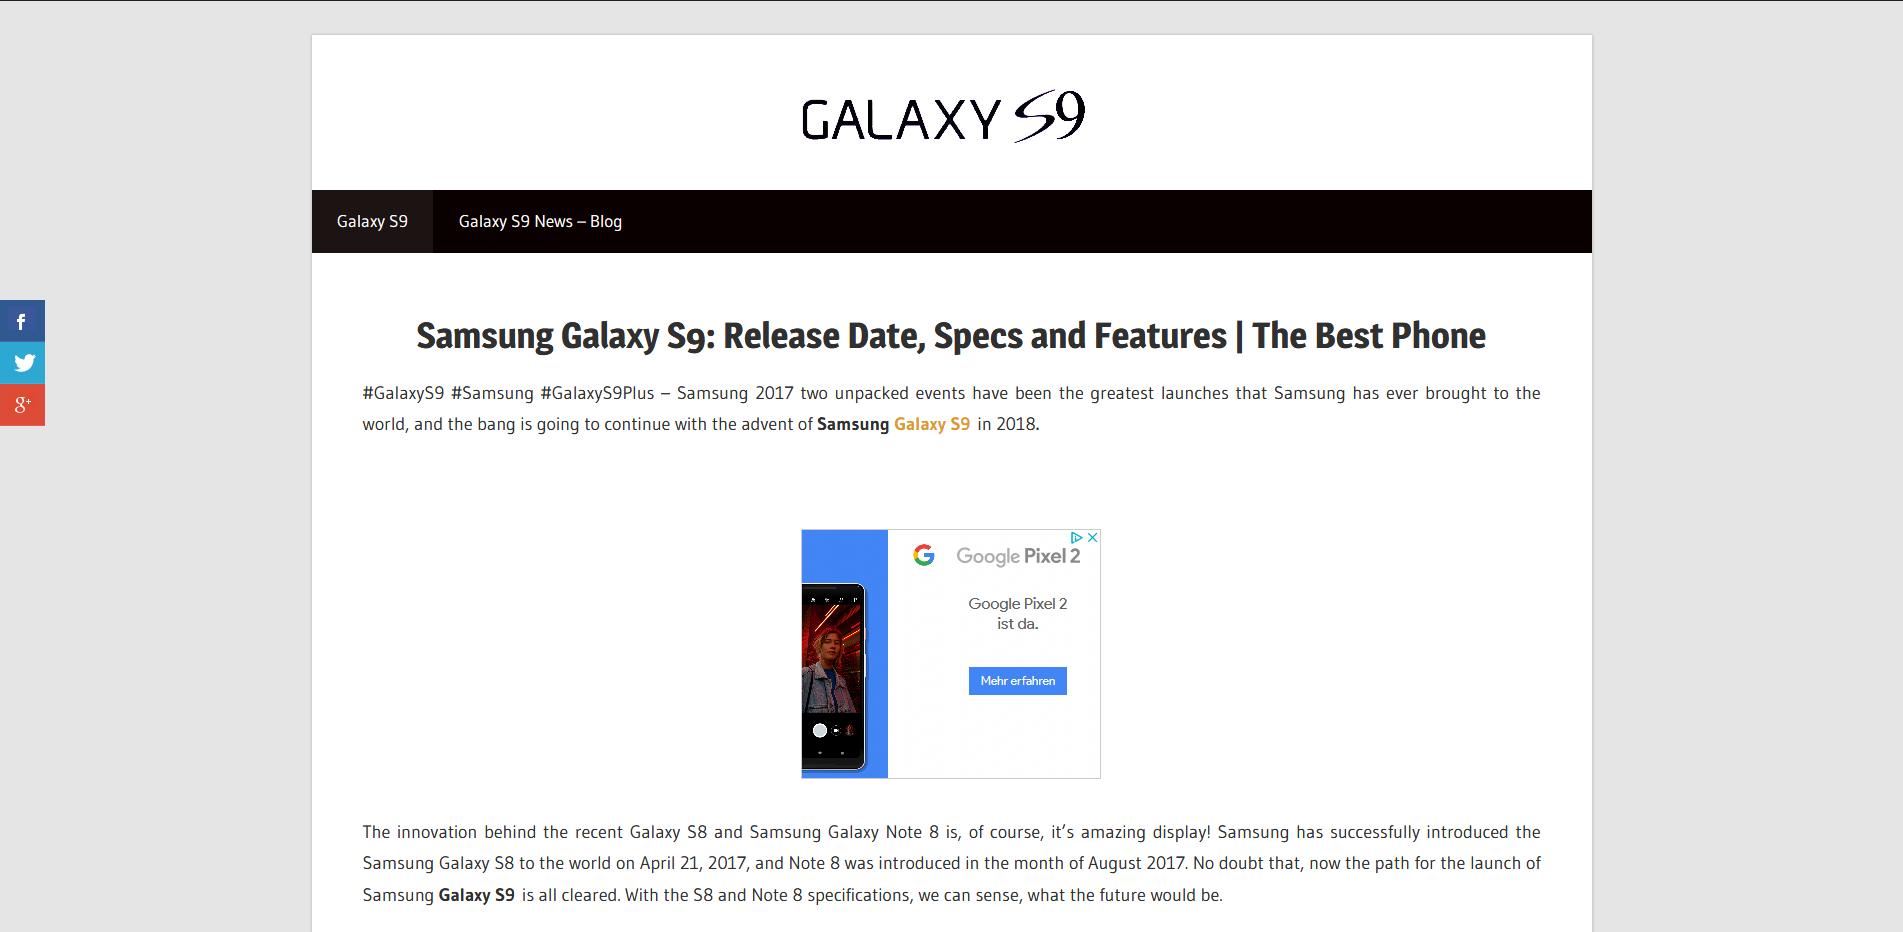 Samsung Galaxy S9 BLOG